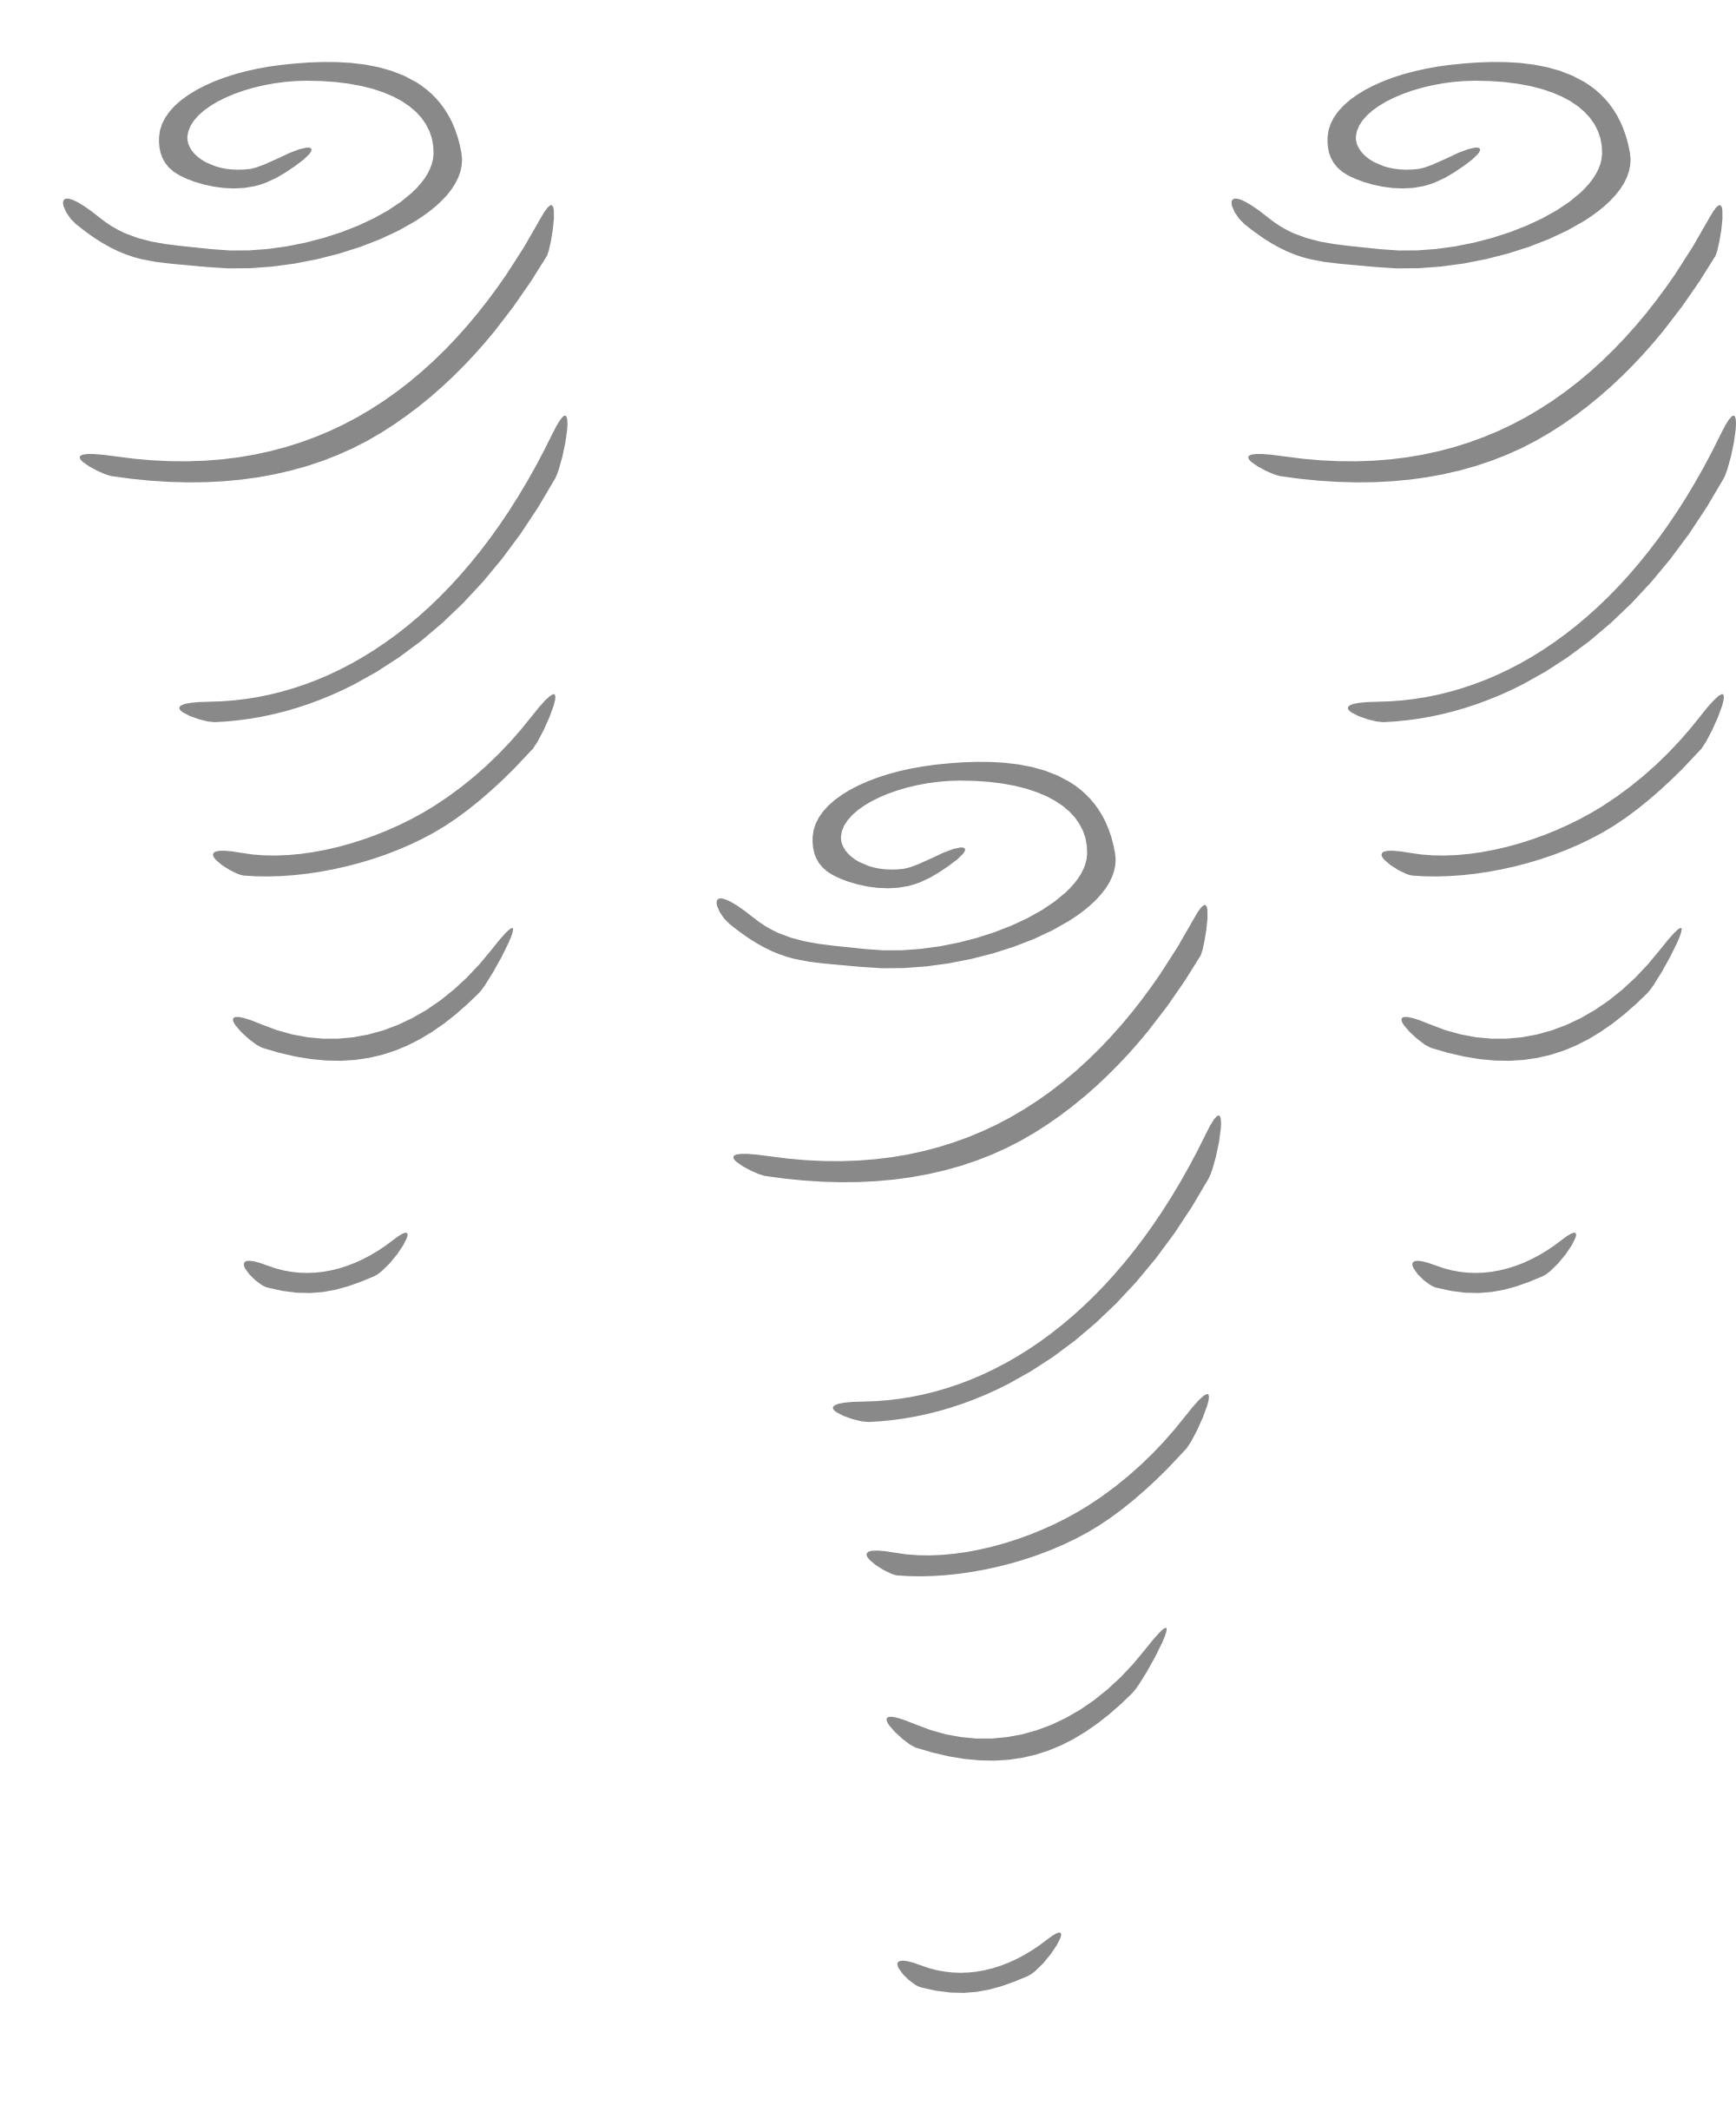 Drawing spirals dizzy. Twister s cutie mark